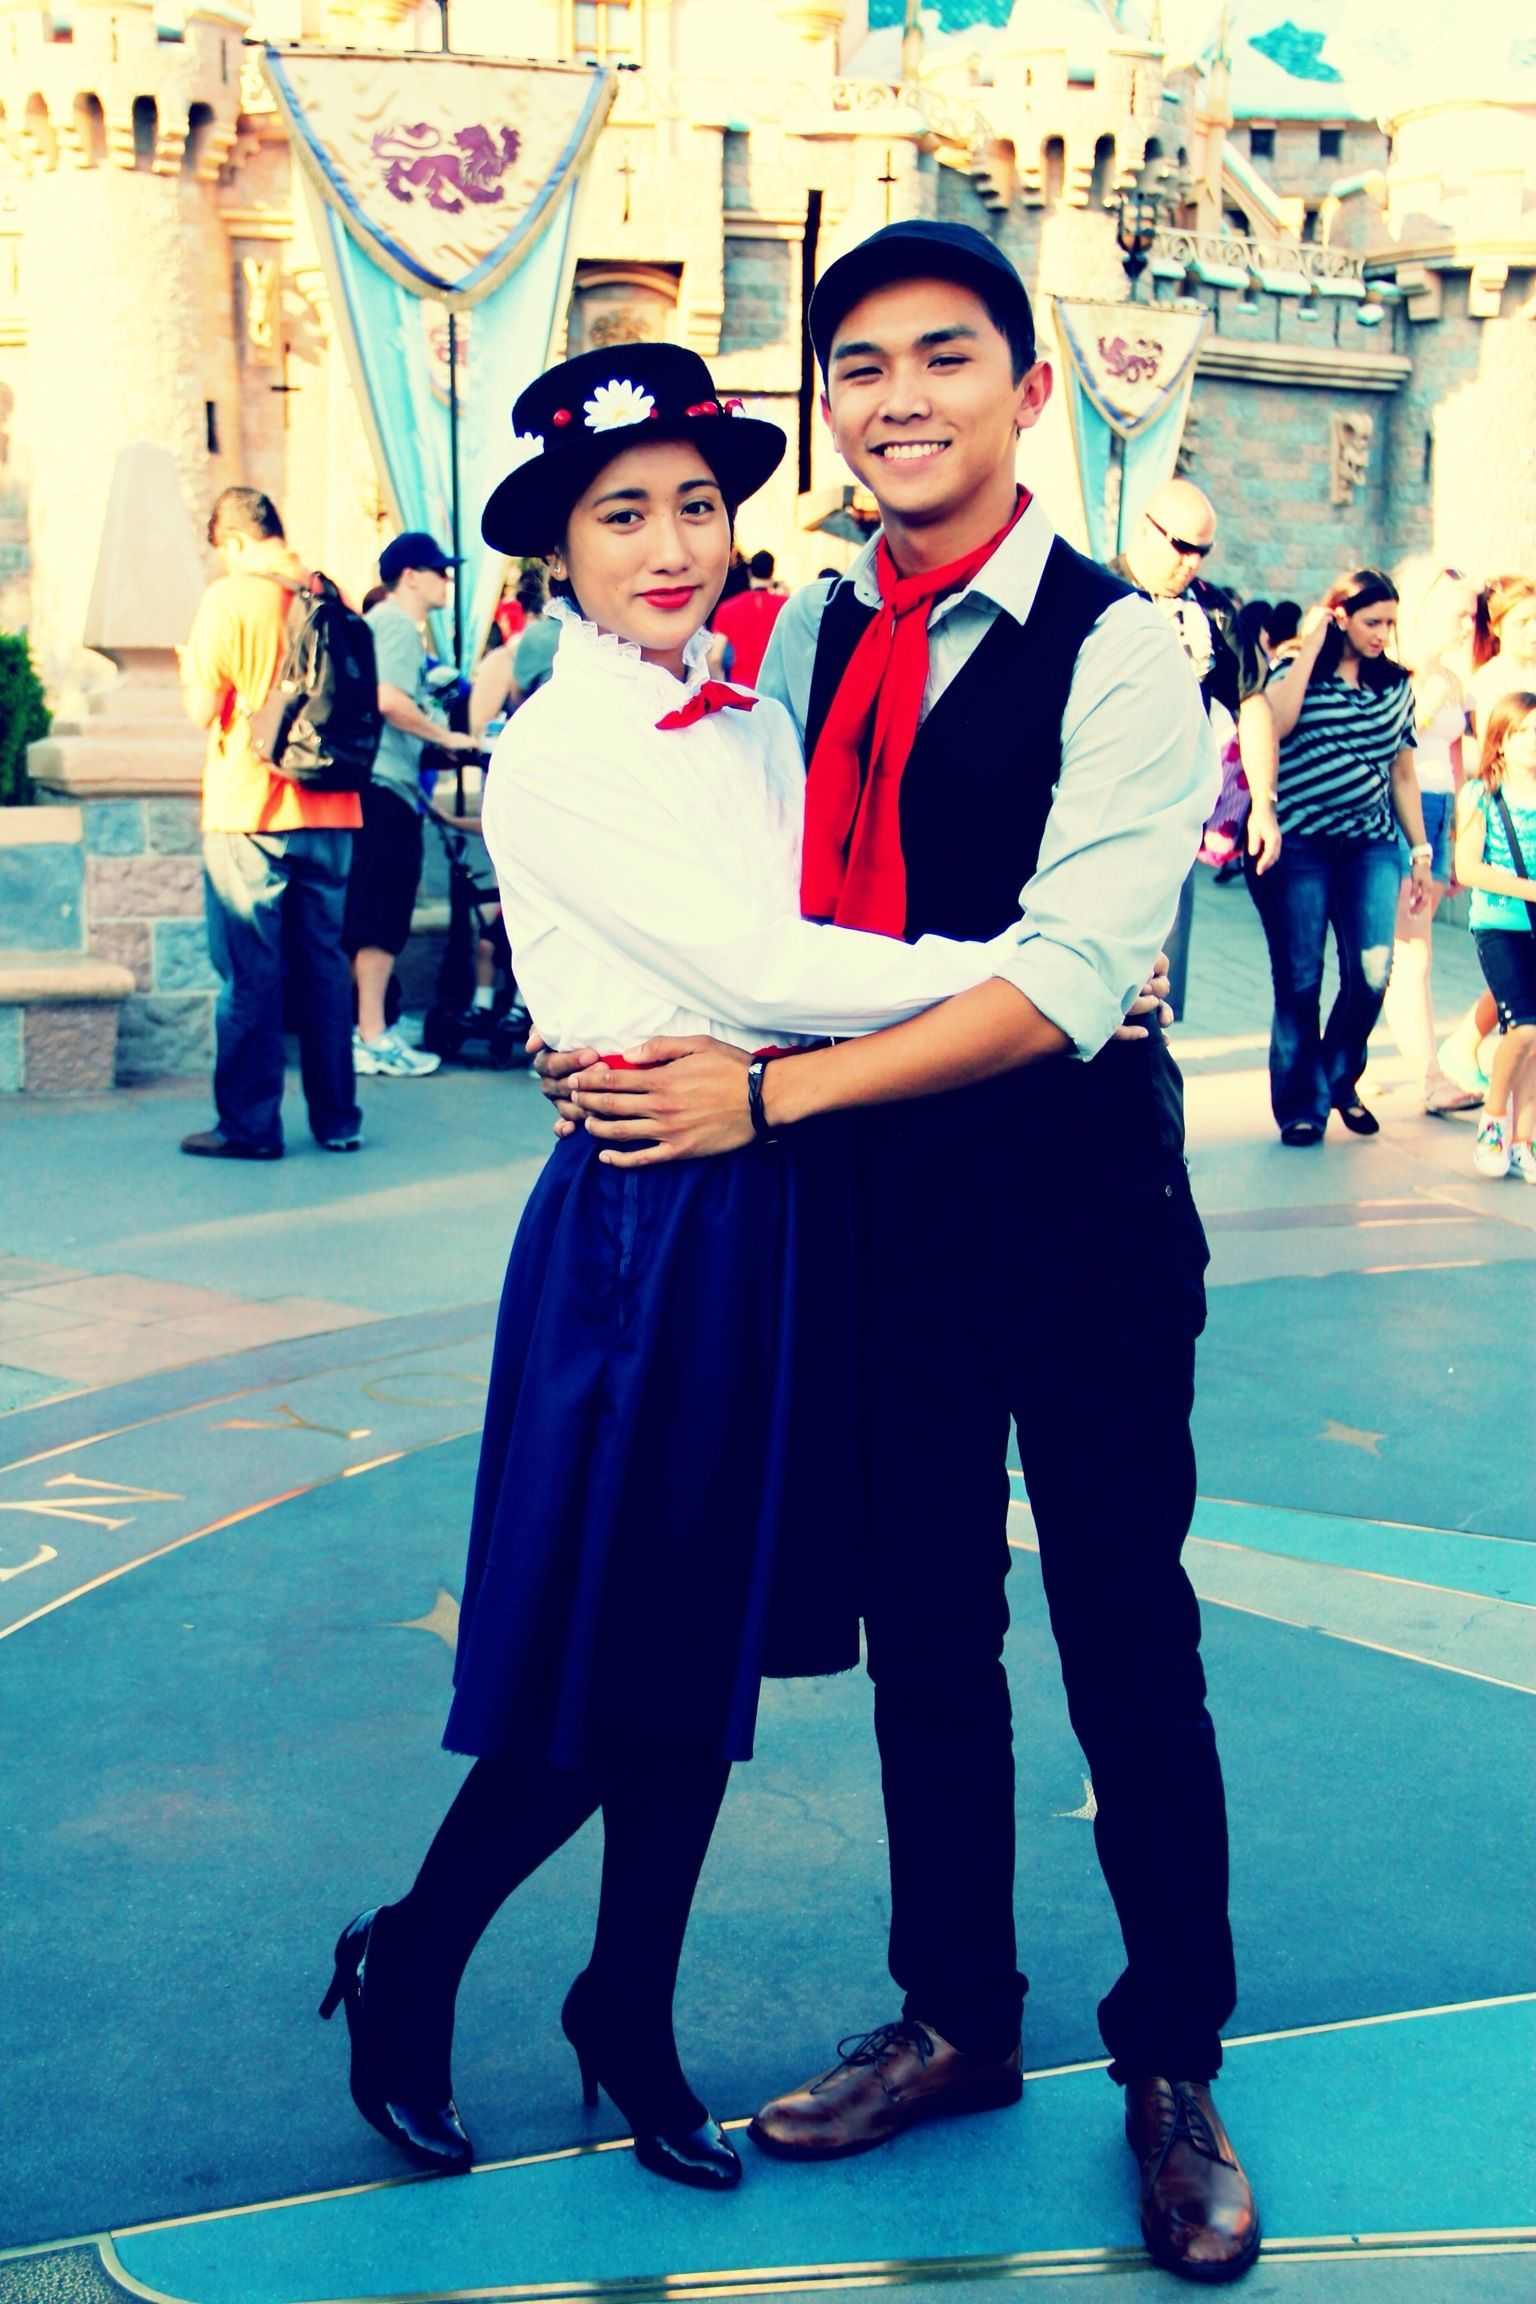 Costumes. DIY. Mary Poppins and Bert. Disney. Couple